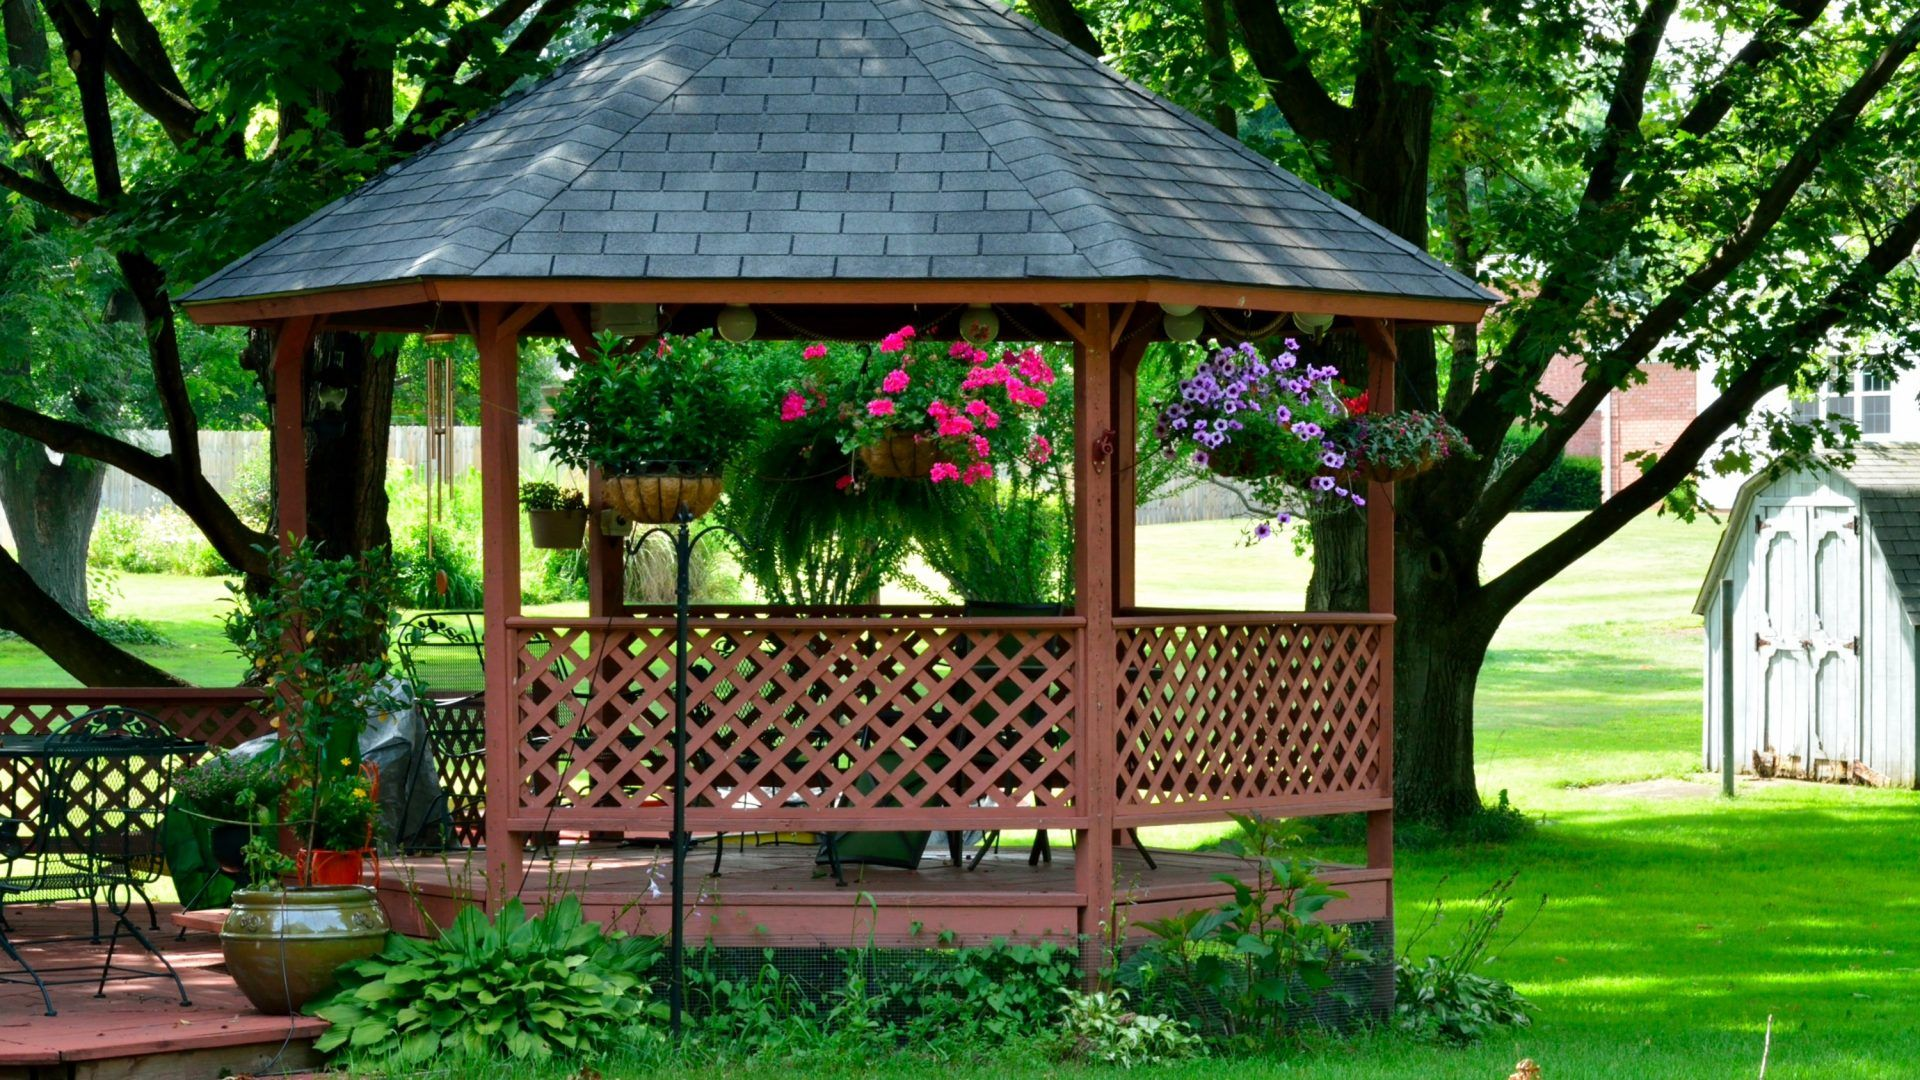 Natbg Com Scenic Summer Gazebo Relaxing Peaceful Beautiful Full